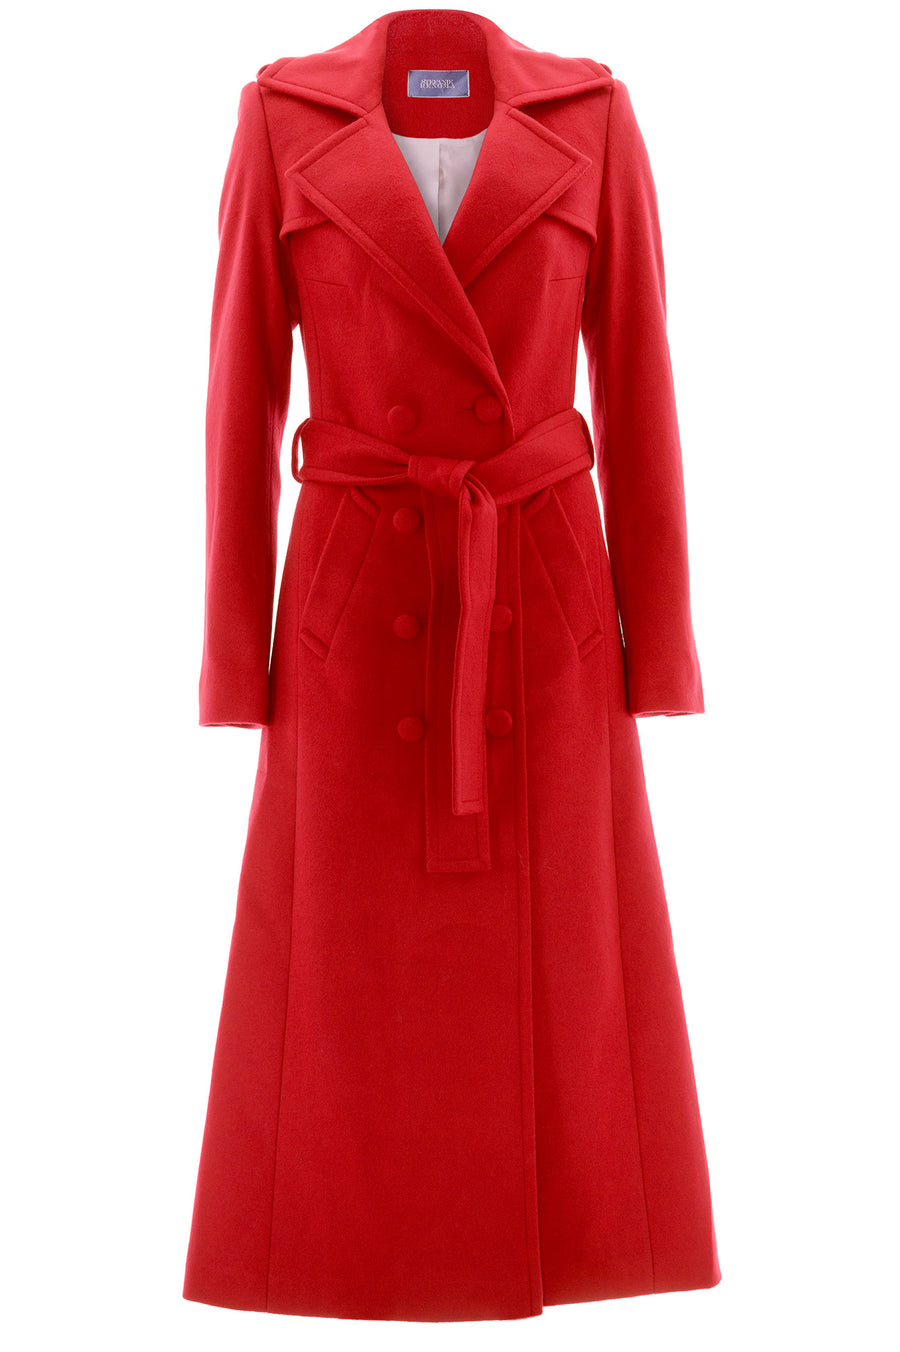 Stefanie Renoma-BRIGHT RED LONG COAT IN CASHEMERE-Silkarmour-1